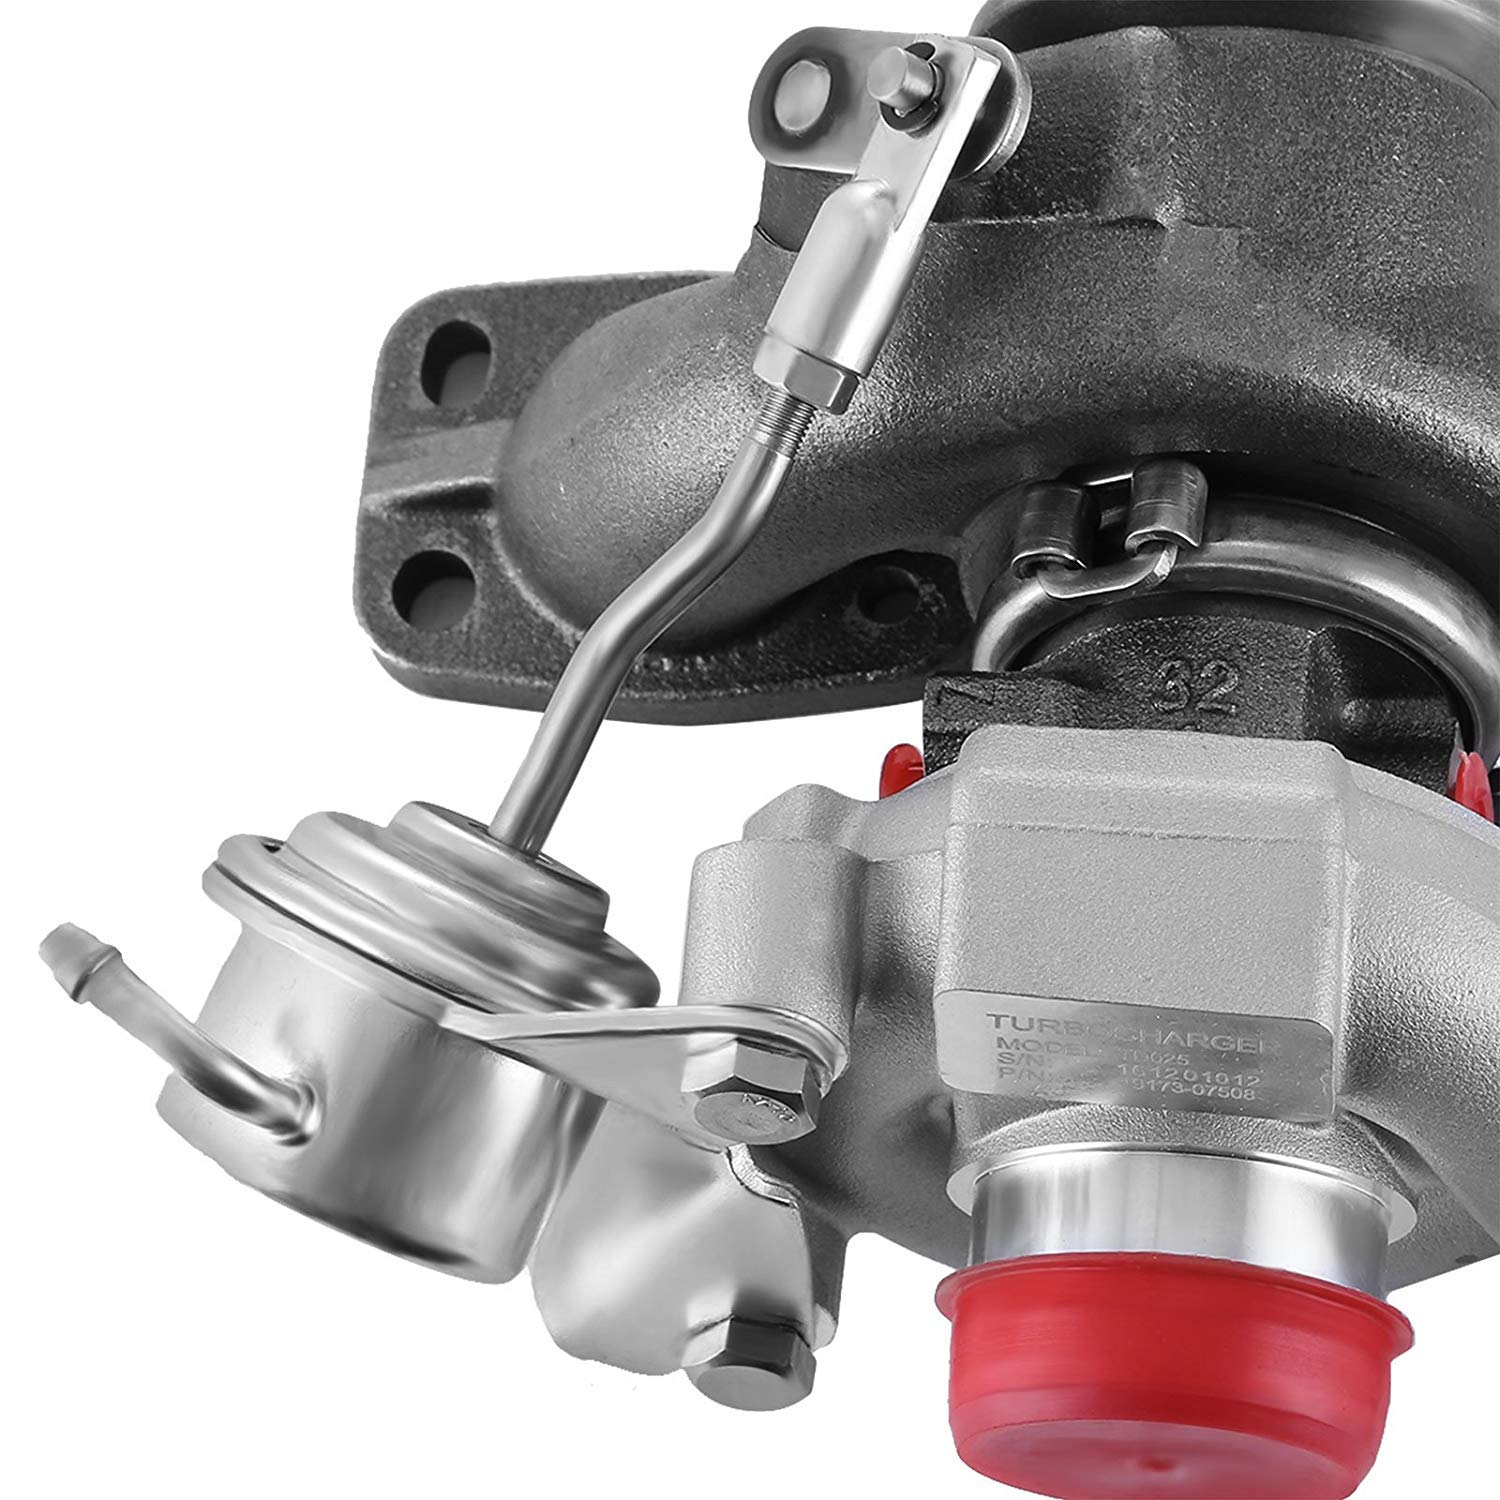 Mophorn Turbo Turbocharger for Vaux-hall OP-EL Viva-ro Mova-no 1.9 DCI GT1549S 703245 751768